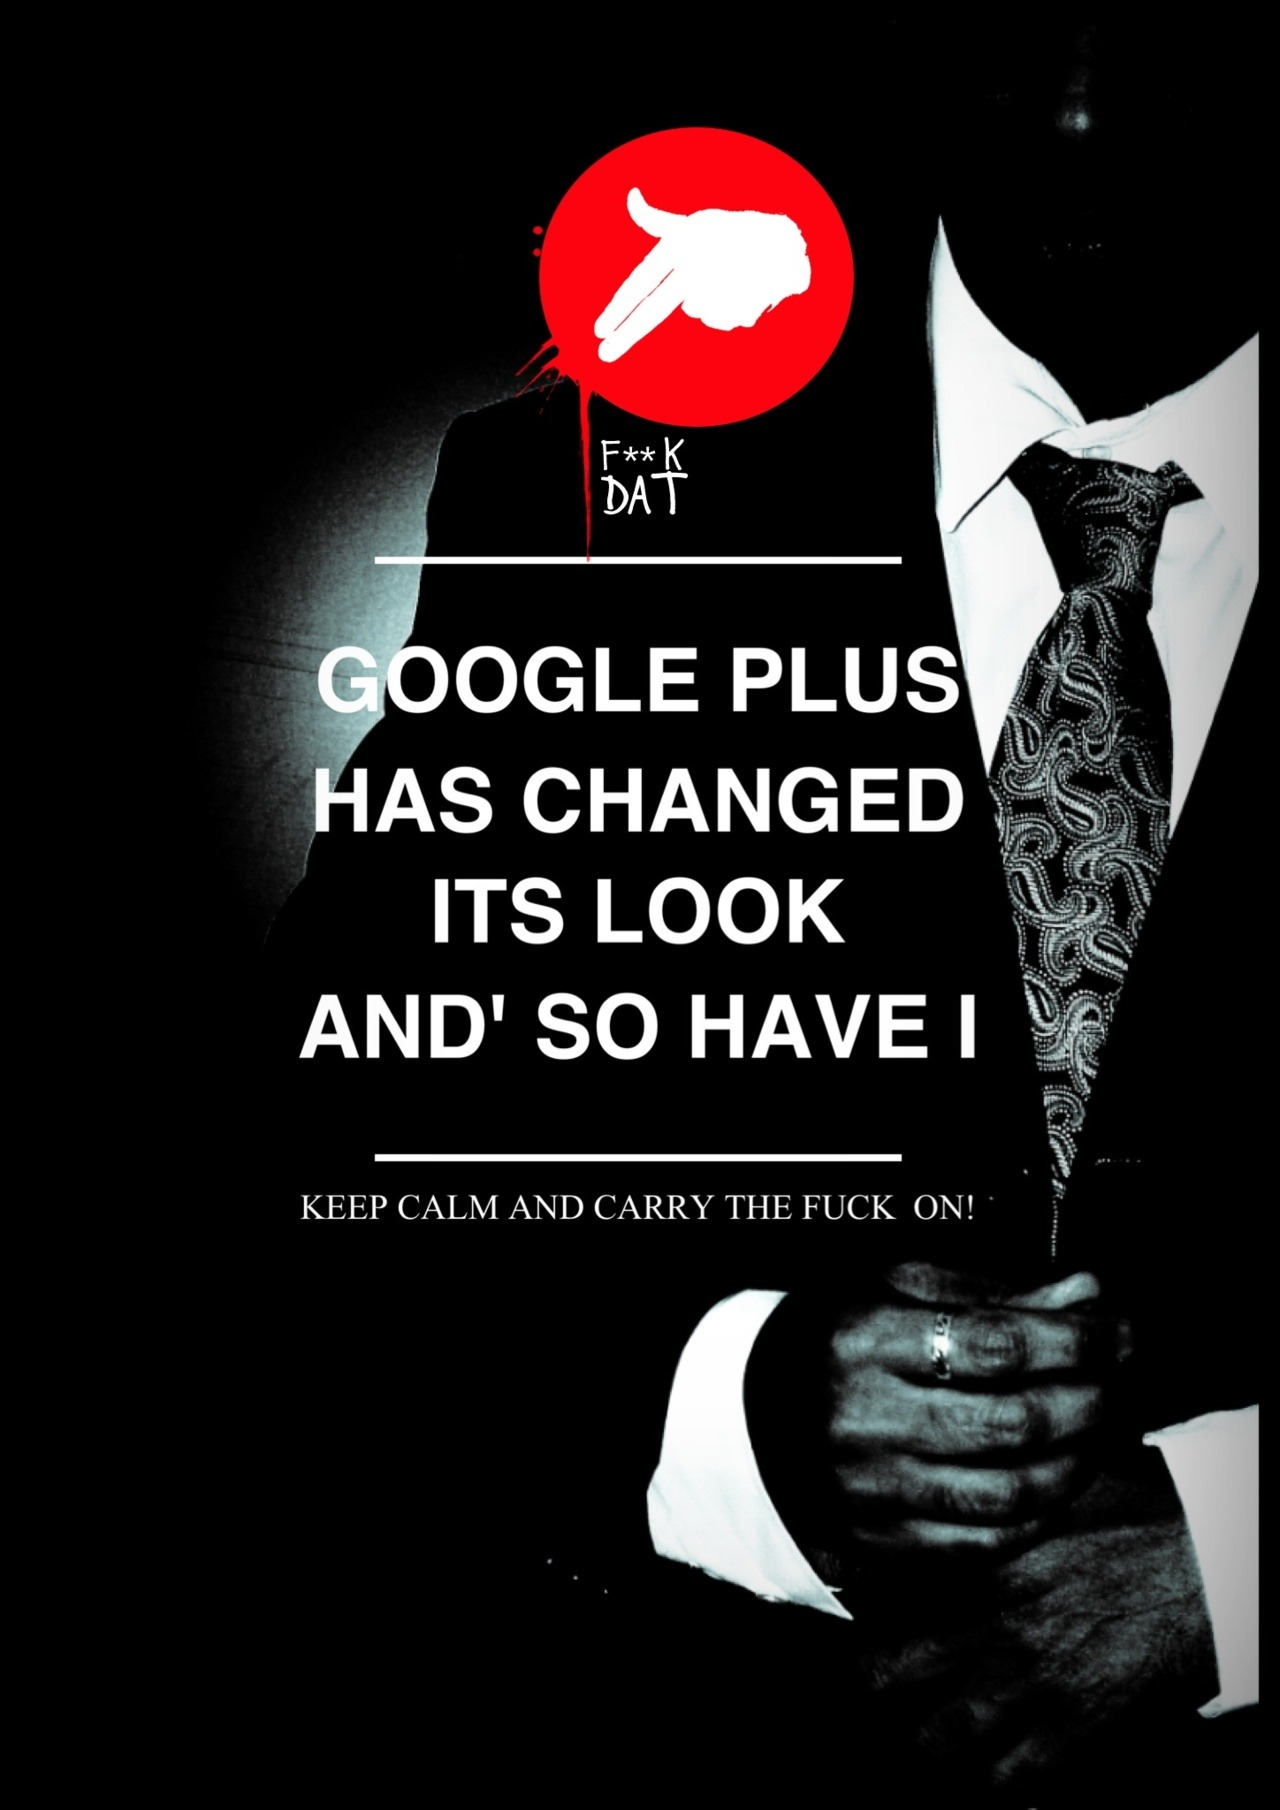 GOOGLE PLUS HAS CHANGED ITS LOOK, AND SO HAVE I - KEEP CALM AND CARRY THE FUCK ON !